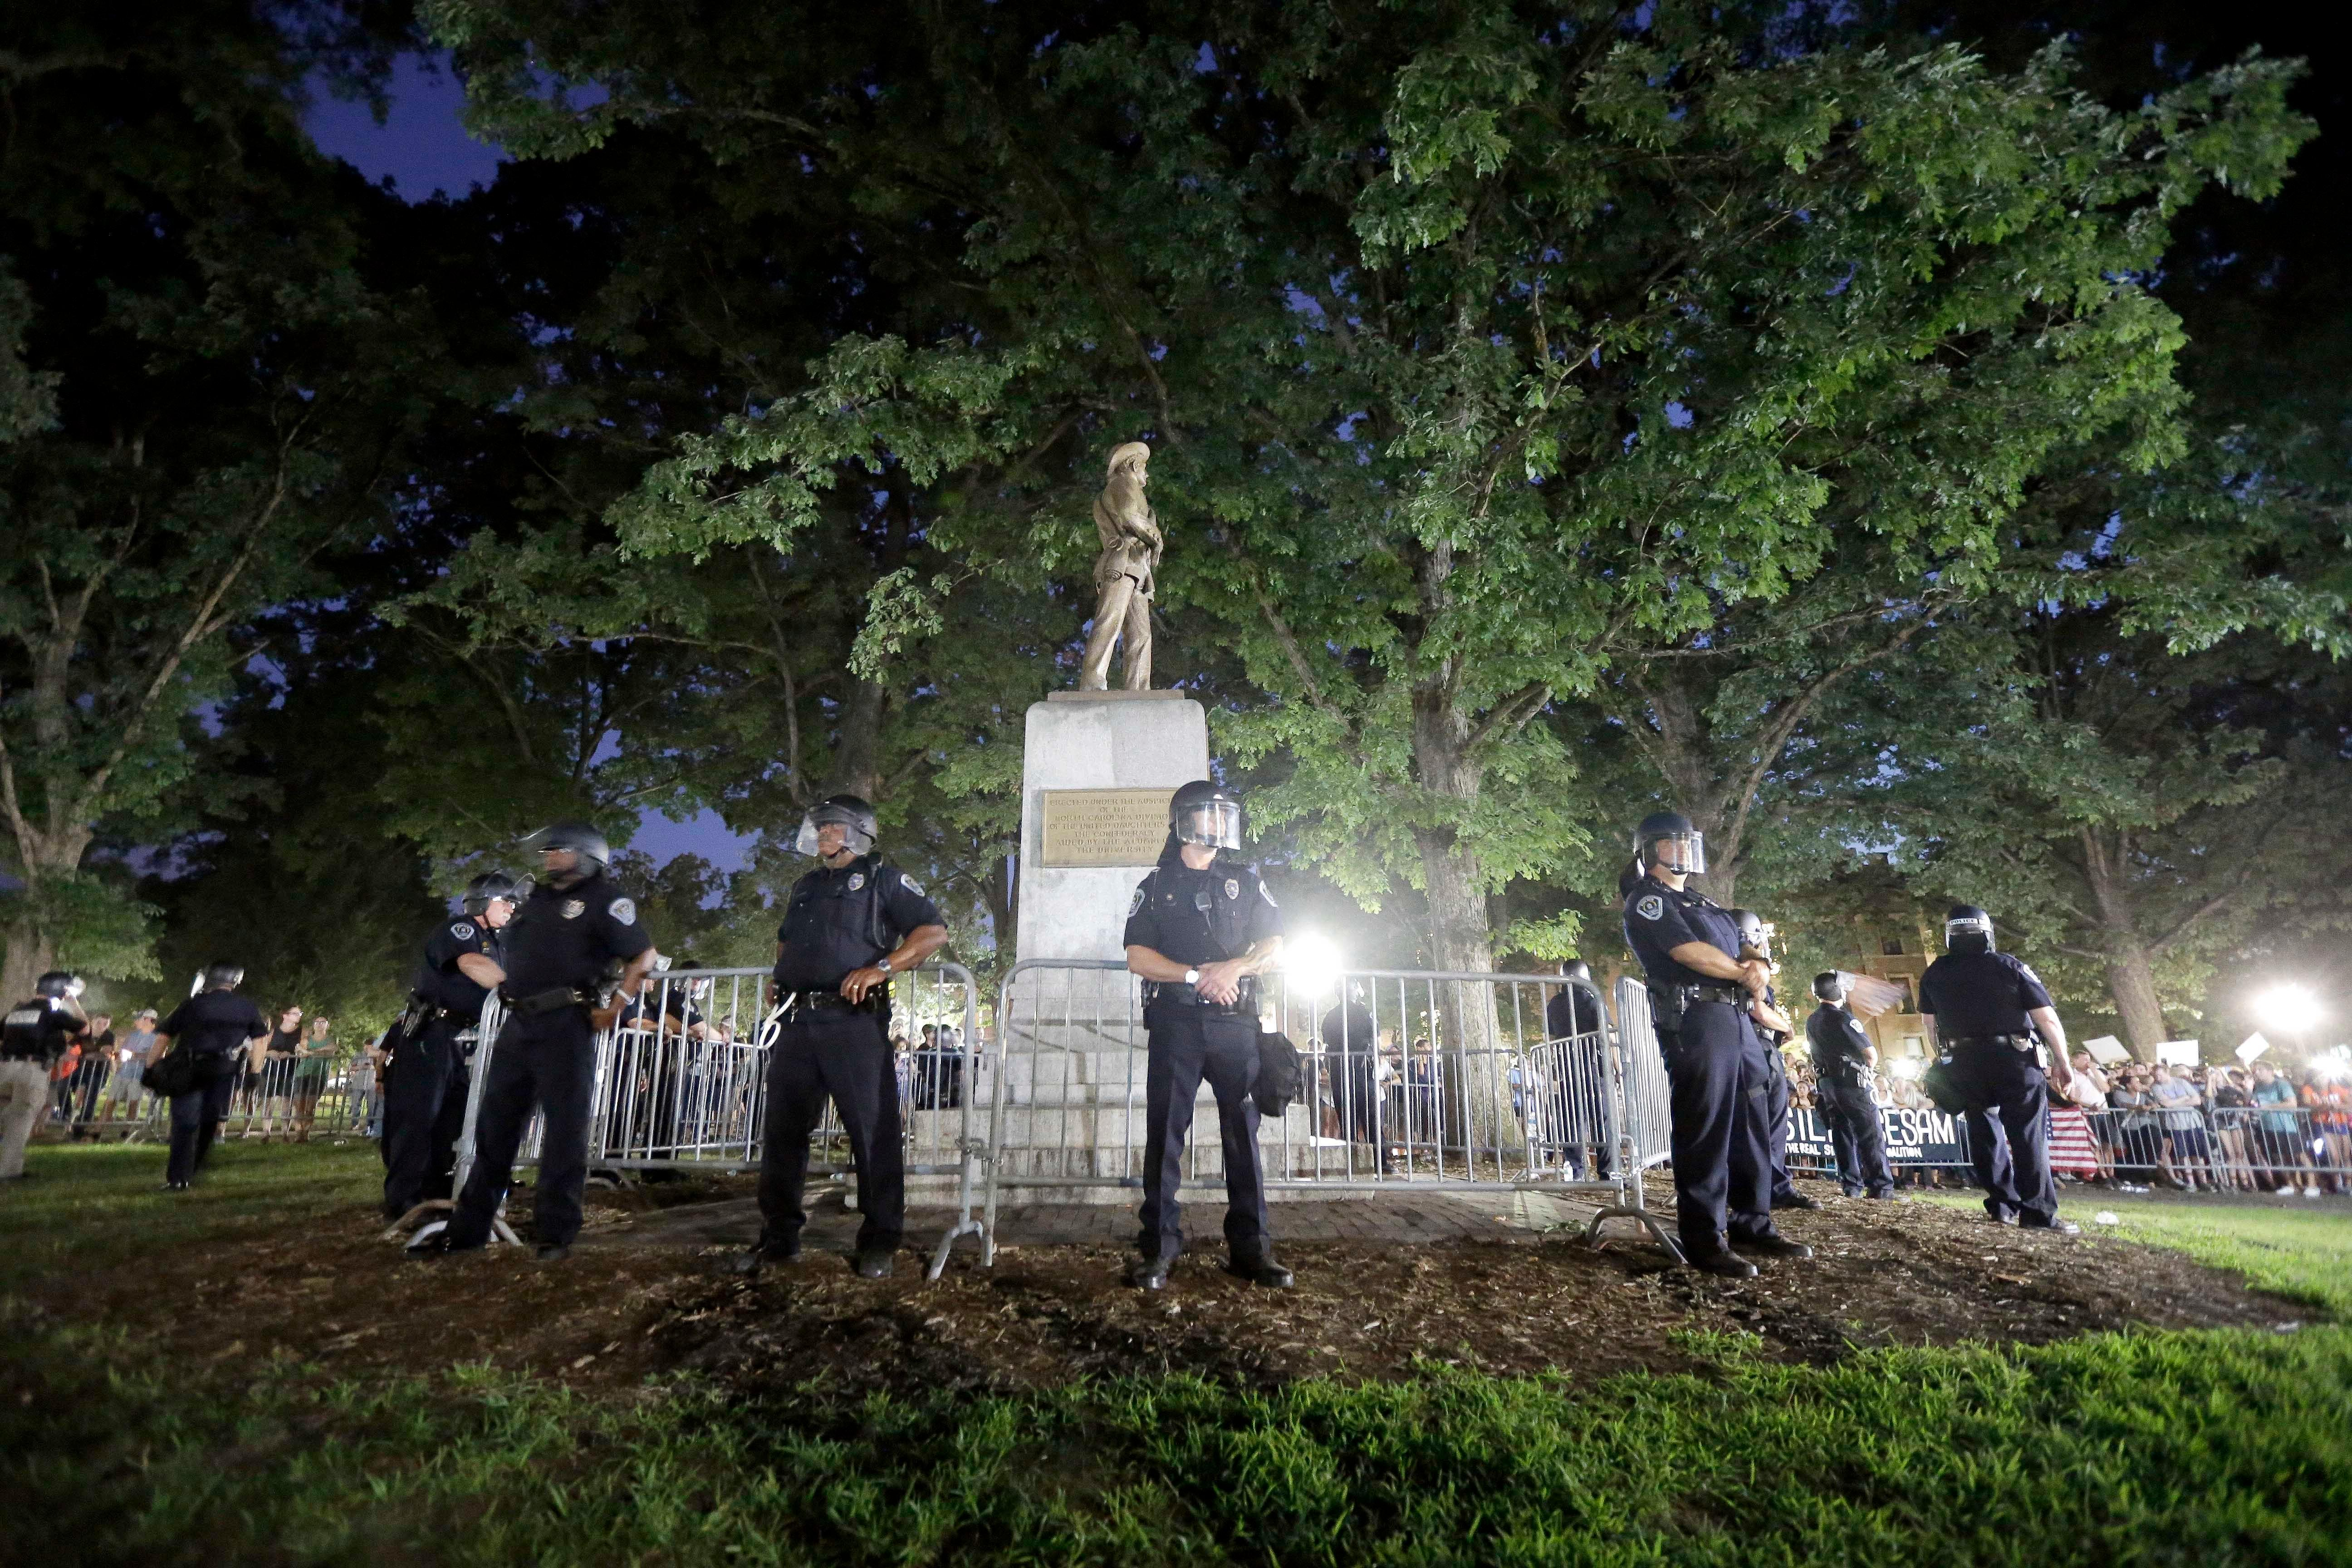 FILE - Police surround a Confederate monument during a protest to remove the statue at the University of North Carolina in Chapel Hill, N.C., Tuesday, Aug. 22, 2017. (AP Photo/Gerry Broome)